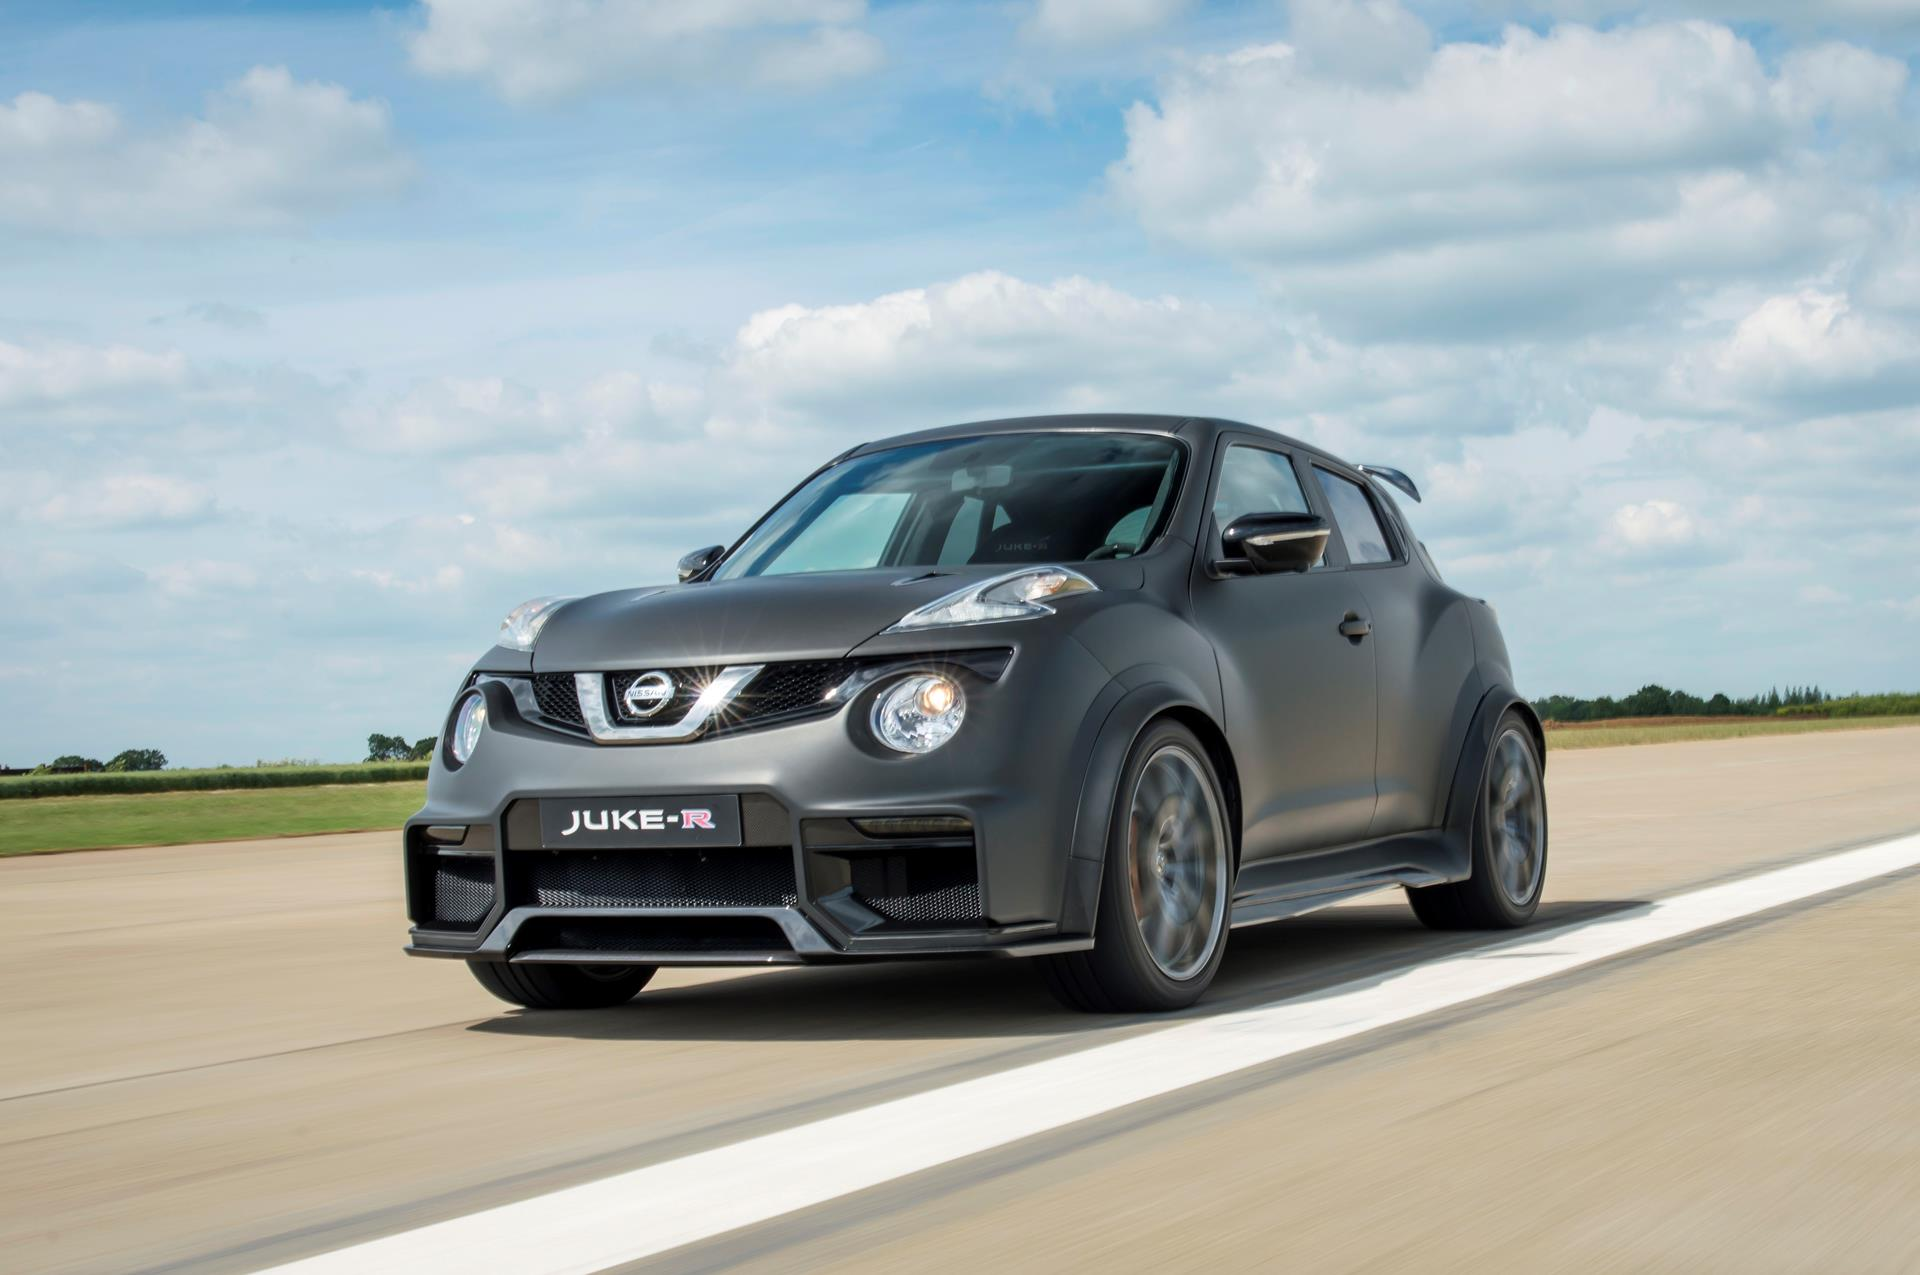 2016 nissan juke r 2 0. Black Bedroom Furniture Sets. Home Design Ideas